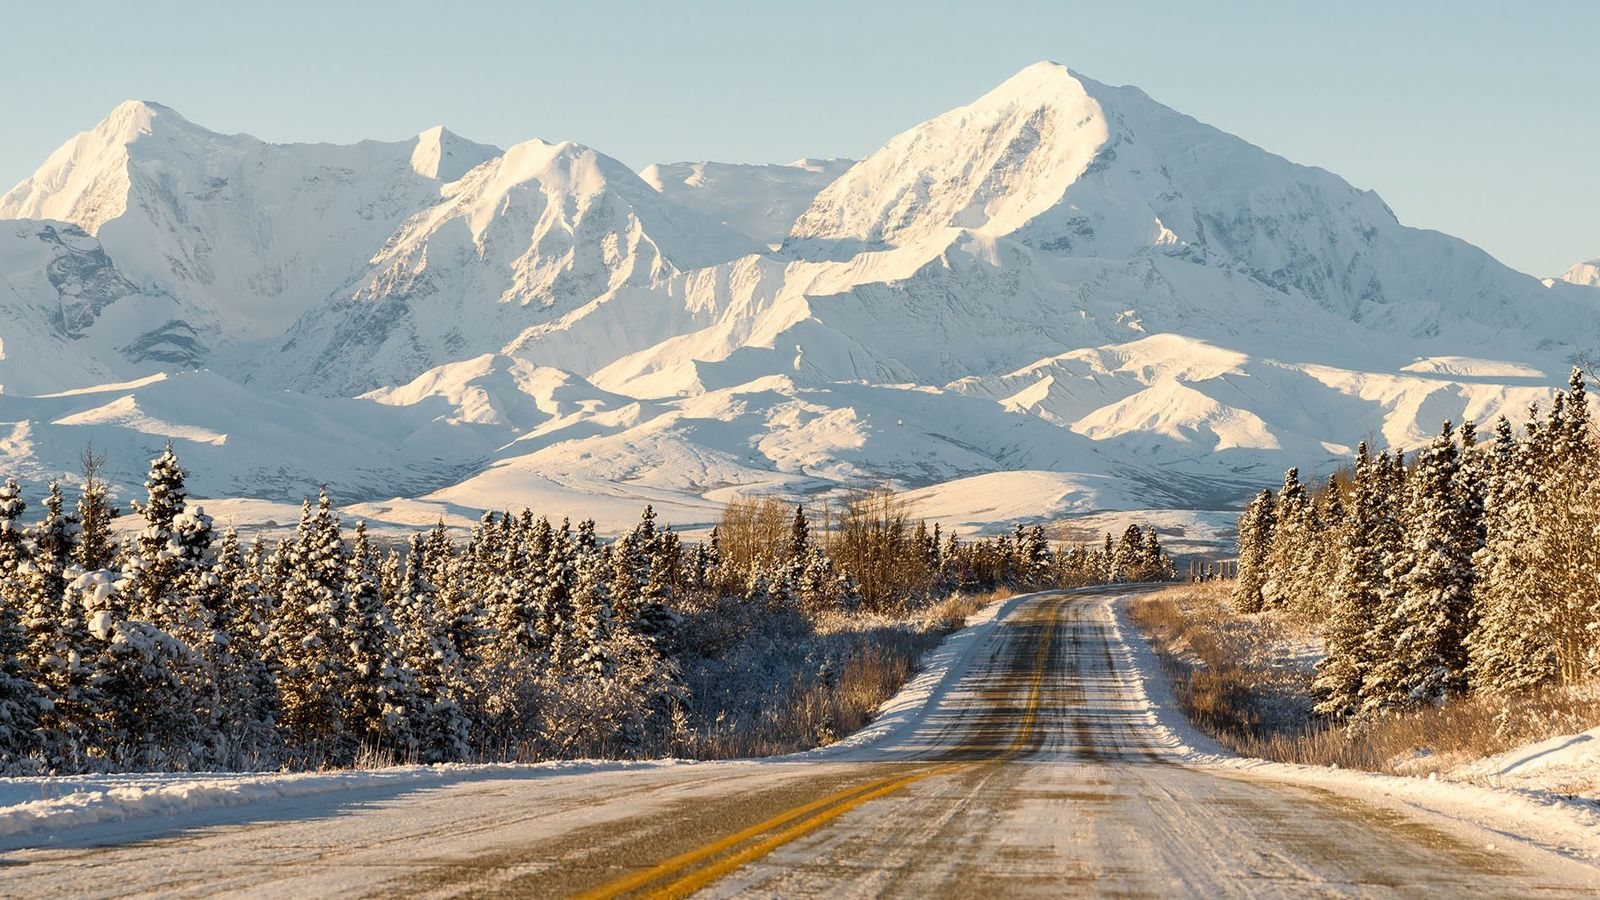 A remote mountain highway in Alaska during winter.